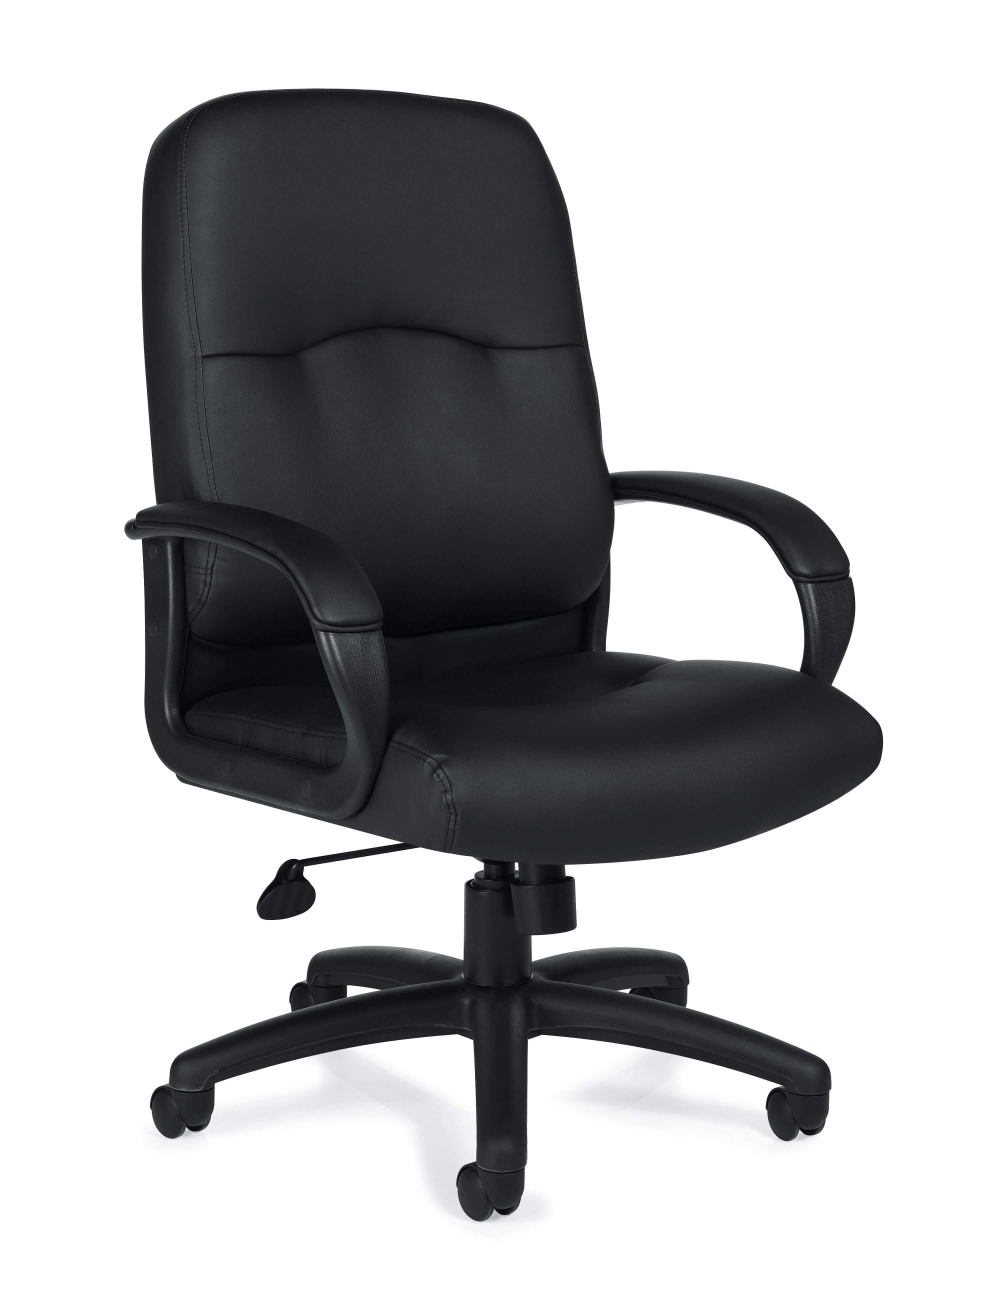 office-furniture-chairs-leather-office-chair.jpg